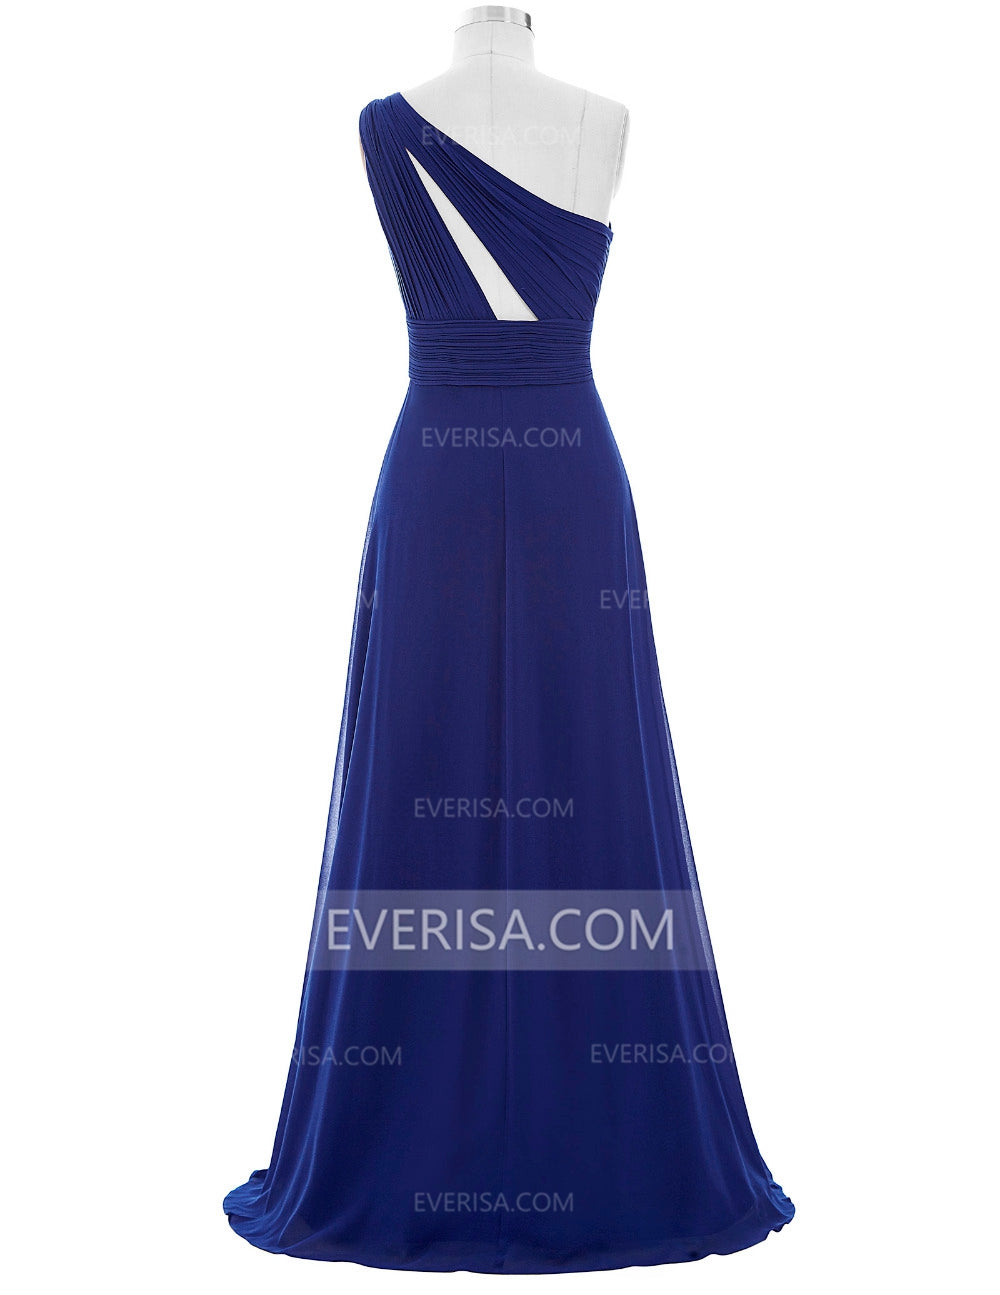 Royal Blue One Shoulder Backless Bridesmaid Dresses Chiffon Prom Dresses